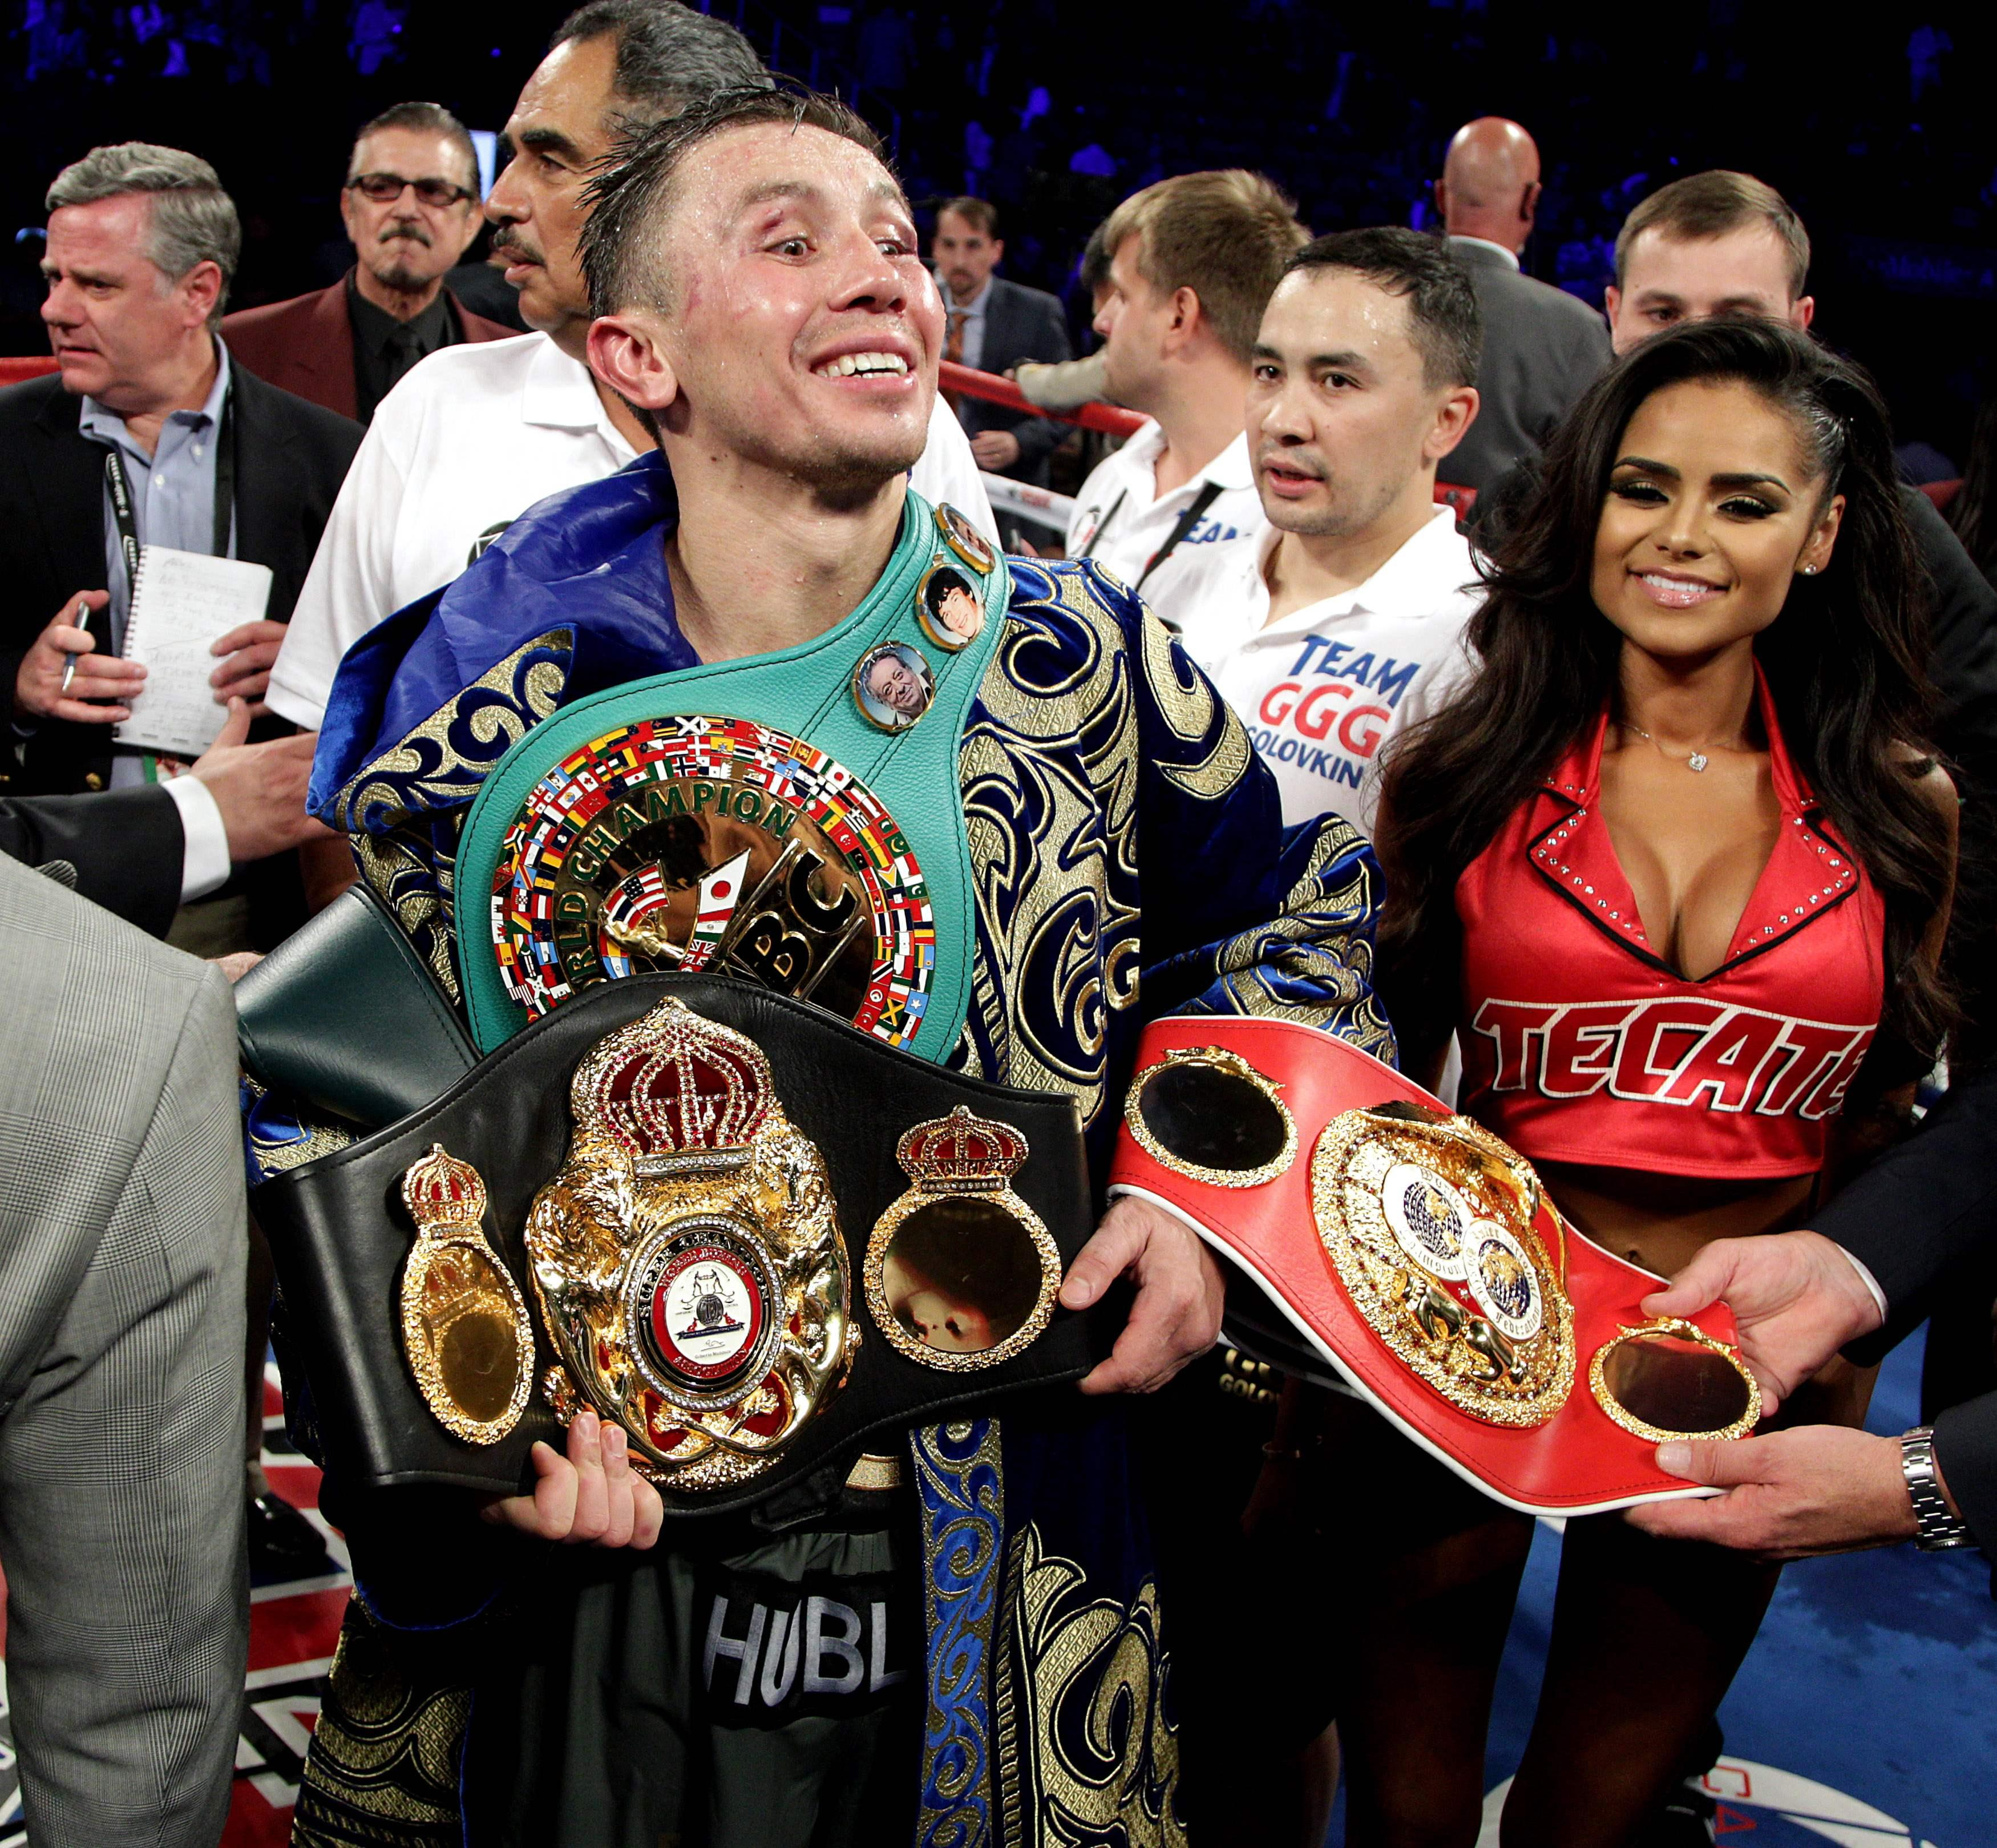 GGG retained the WBC, WBA and IBF belts with a draw